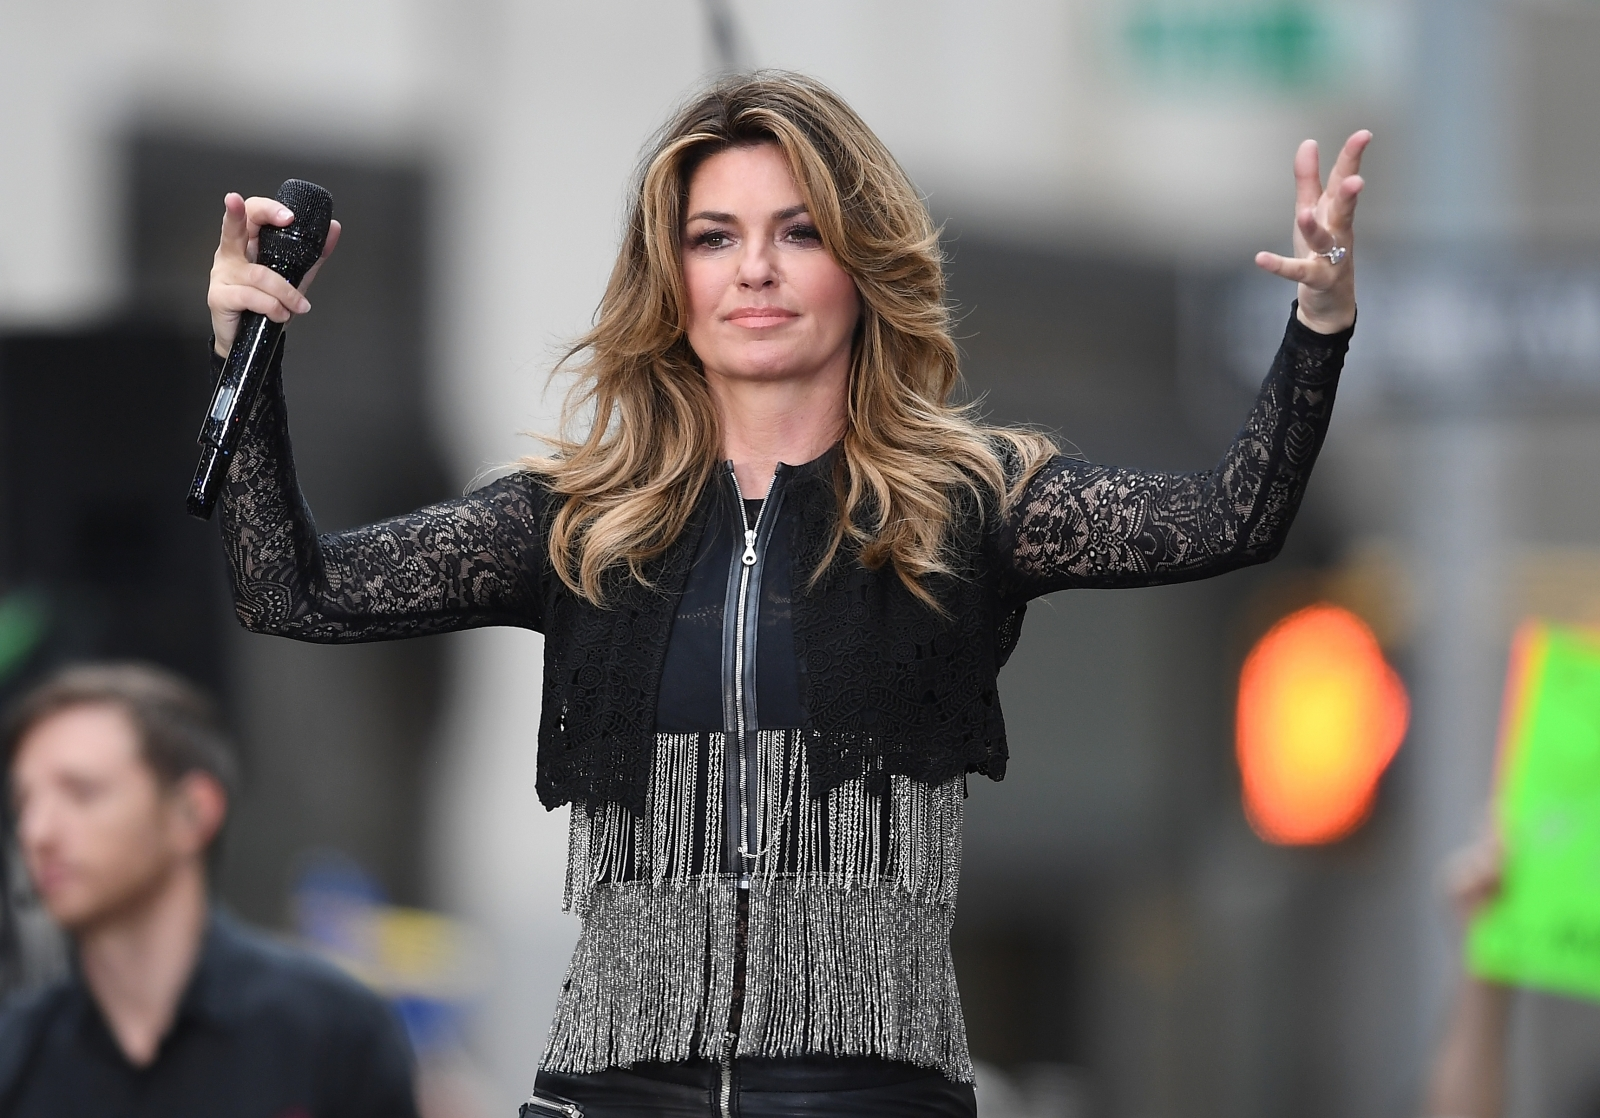 It Was Brad Pitt's Nude Pictures That Didn't Impress Shania Twain Much